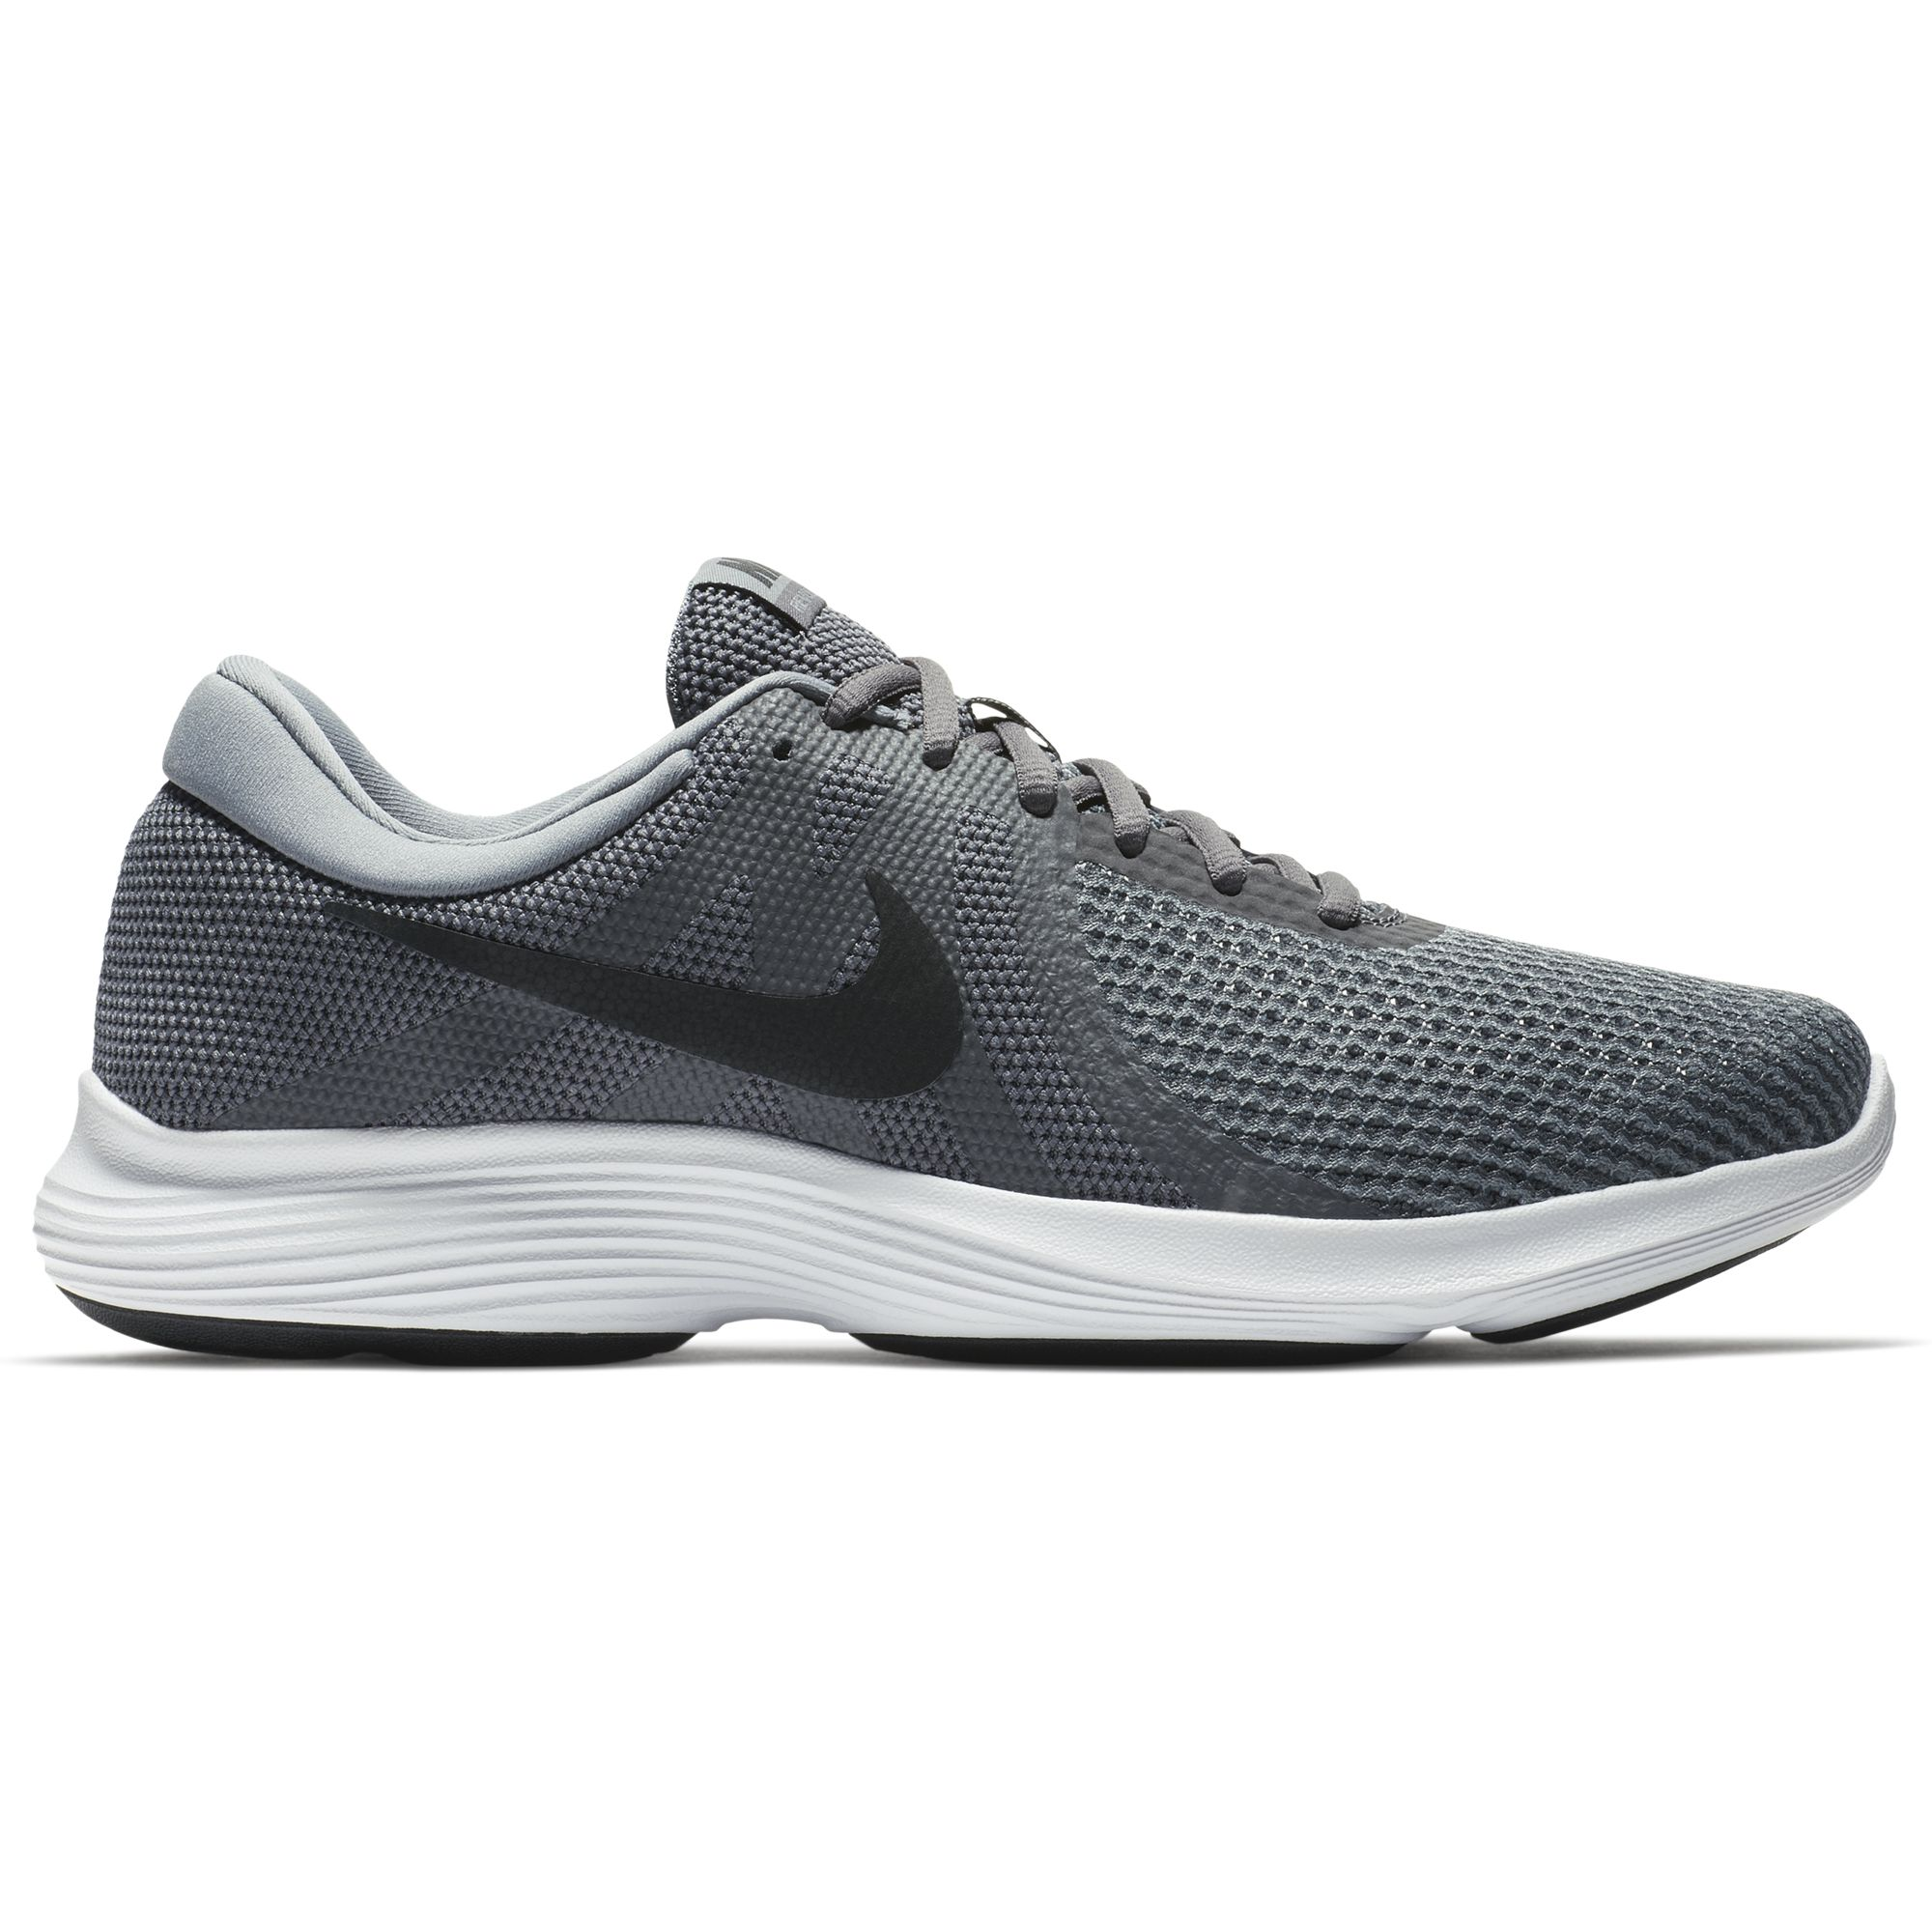 Nike Men's Flex Contact Running Shoe, Midnight NavyWhite Black, 9.5